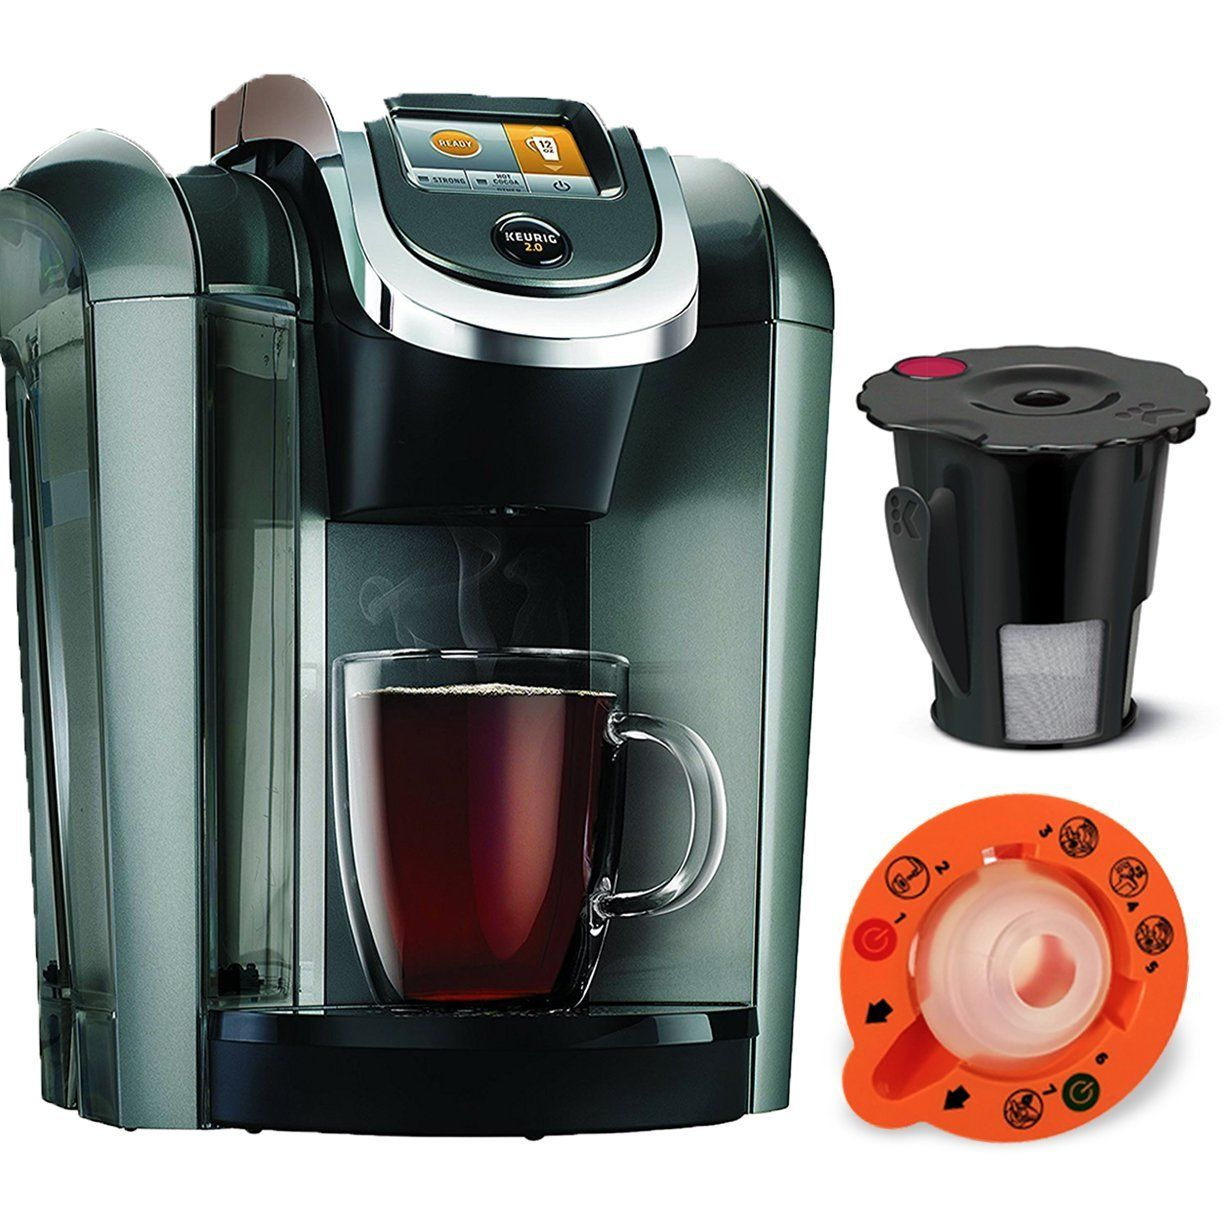 Keurig K545 Plus Coffee Maker Single Serve 2 0 Brewing System Exclusive Offer Includes 2 0 Brewer Top Single Coffee Maker Keurig Coffee Makers Keurig Coffee